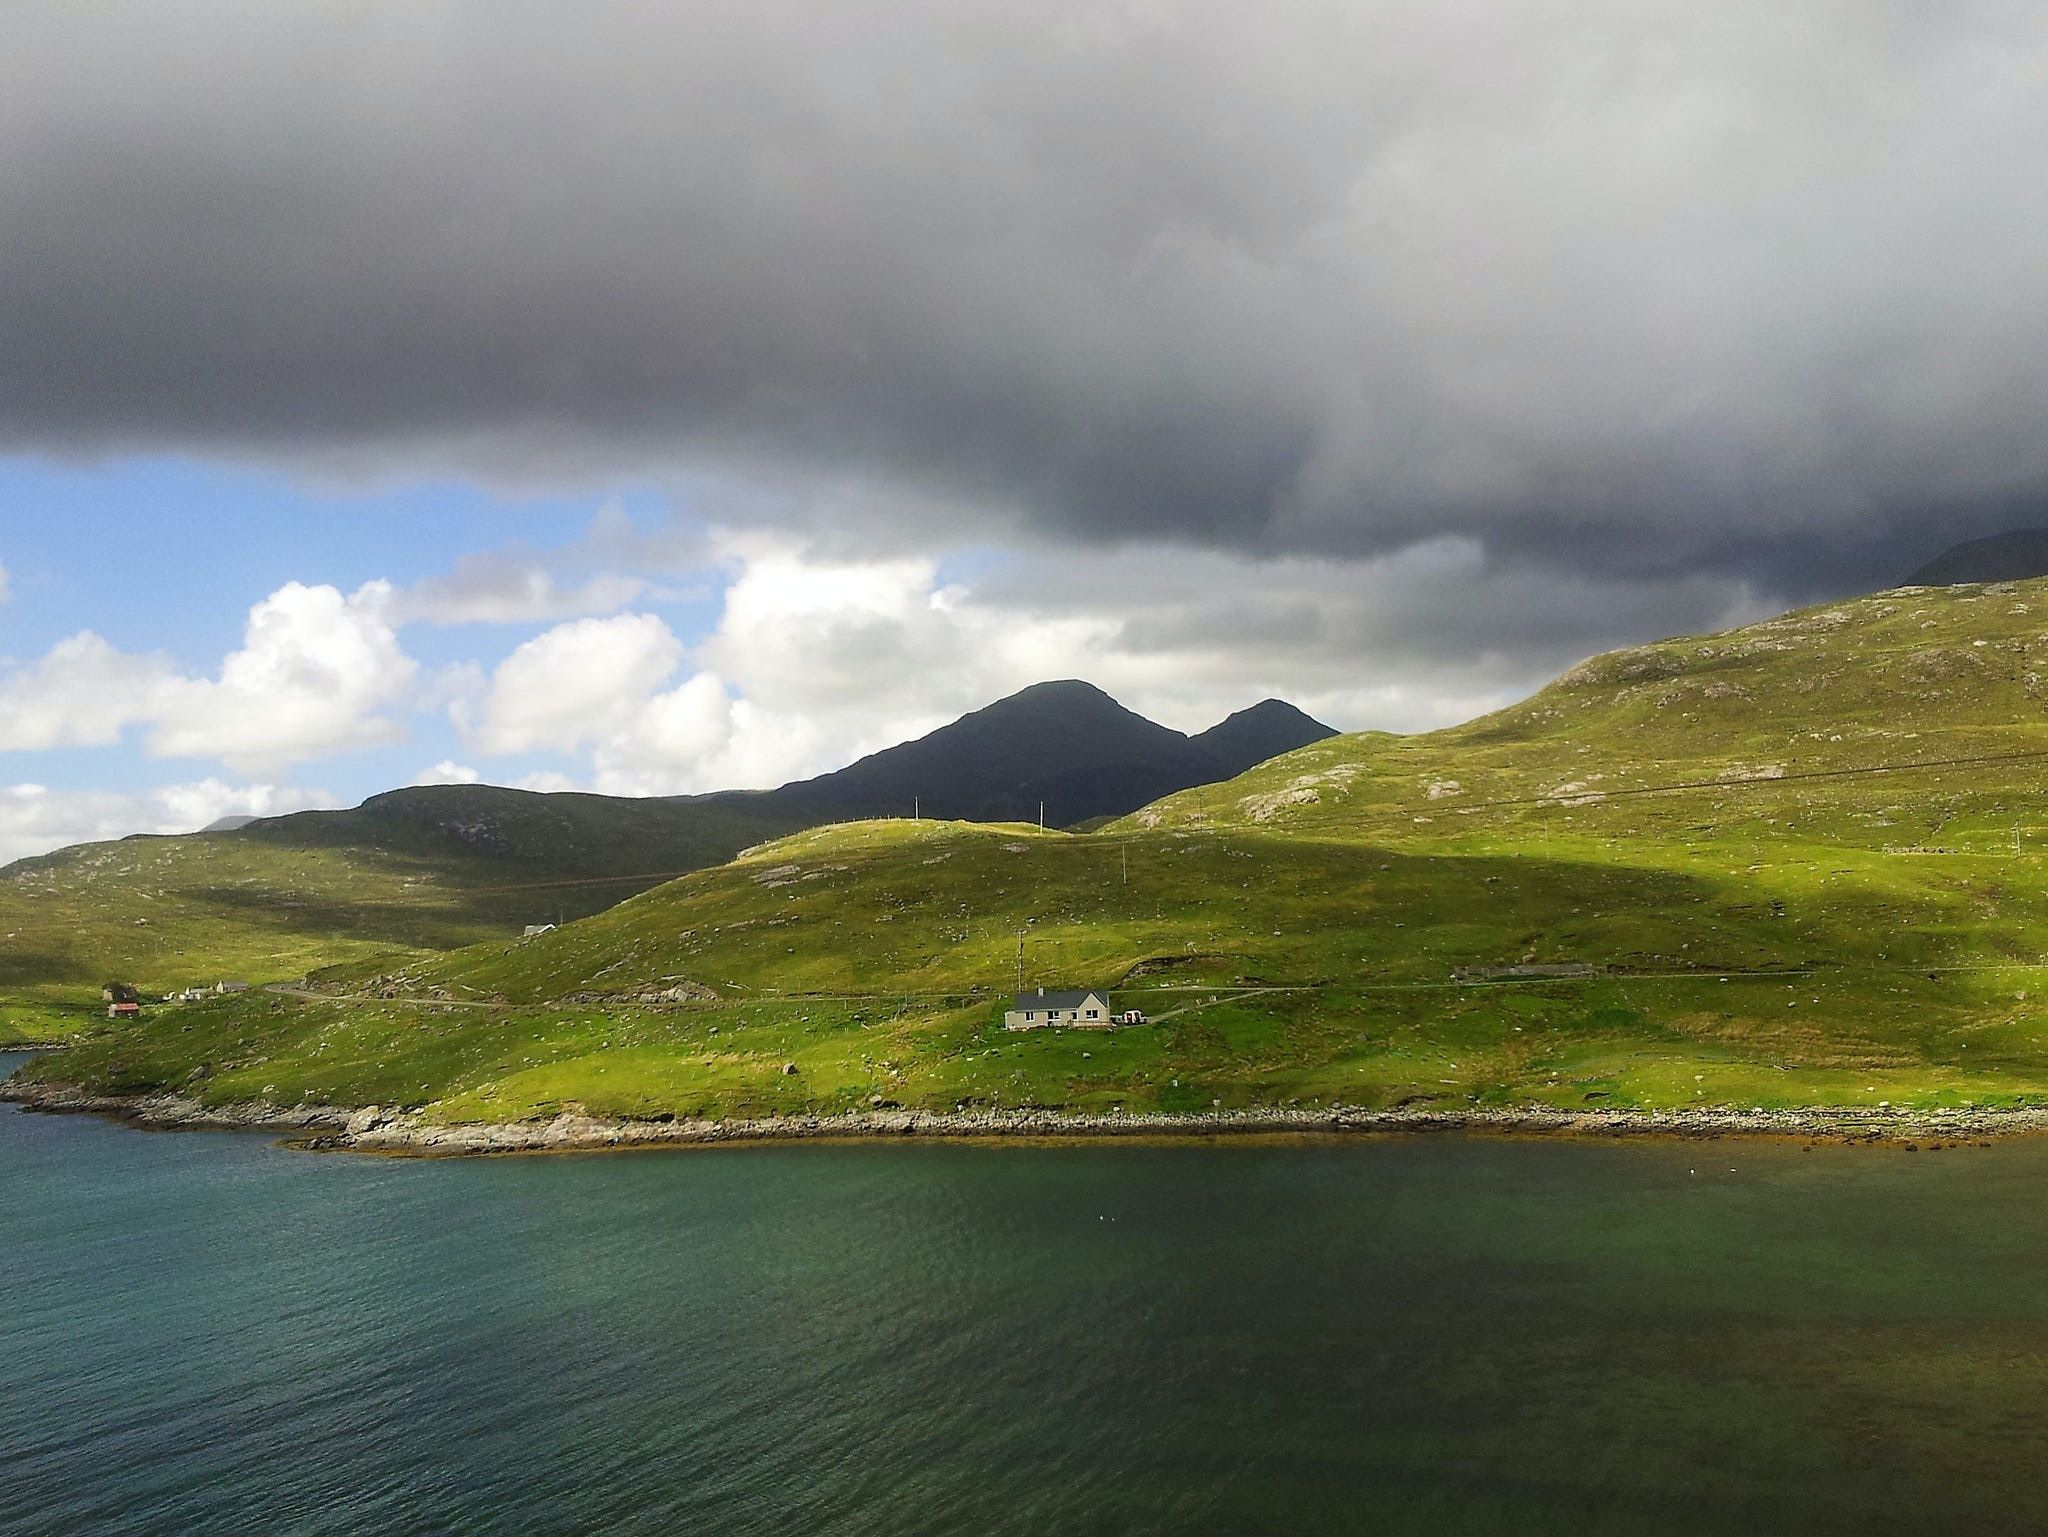 The Isle of Harris is one of the major islands in the Outer Hebrides.